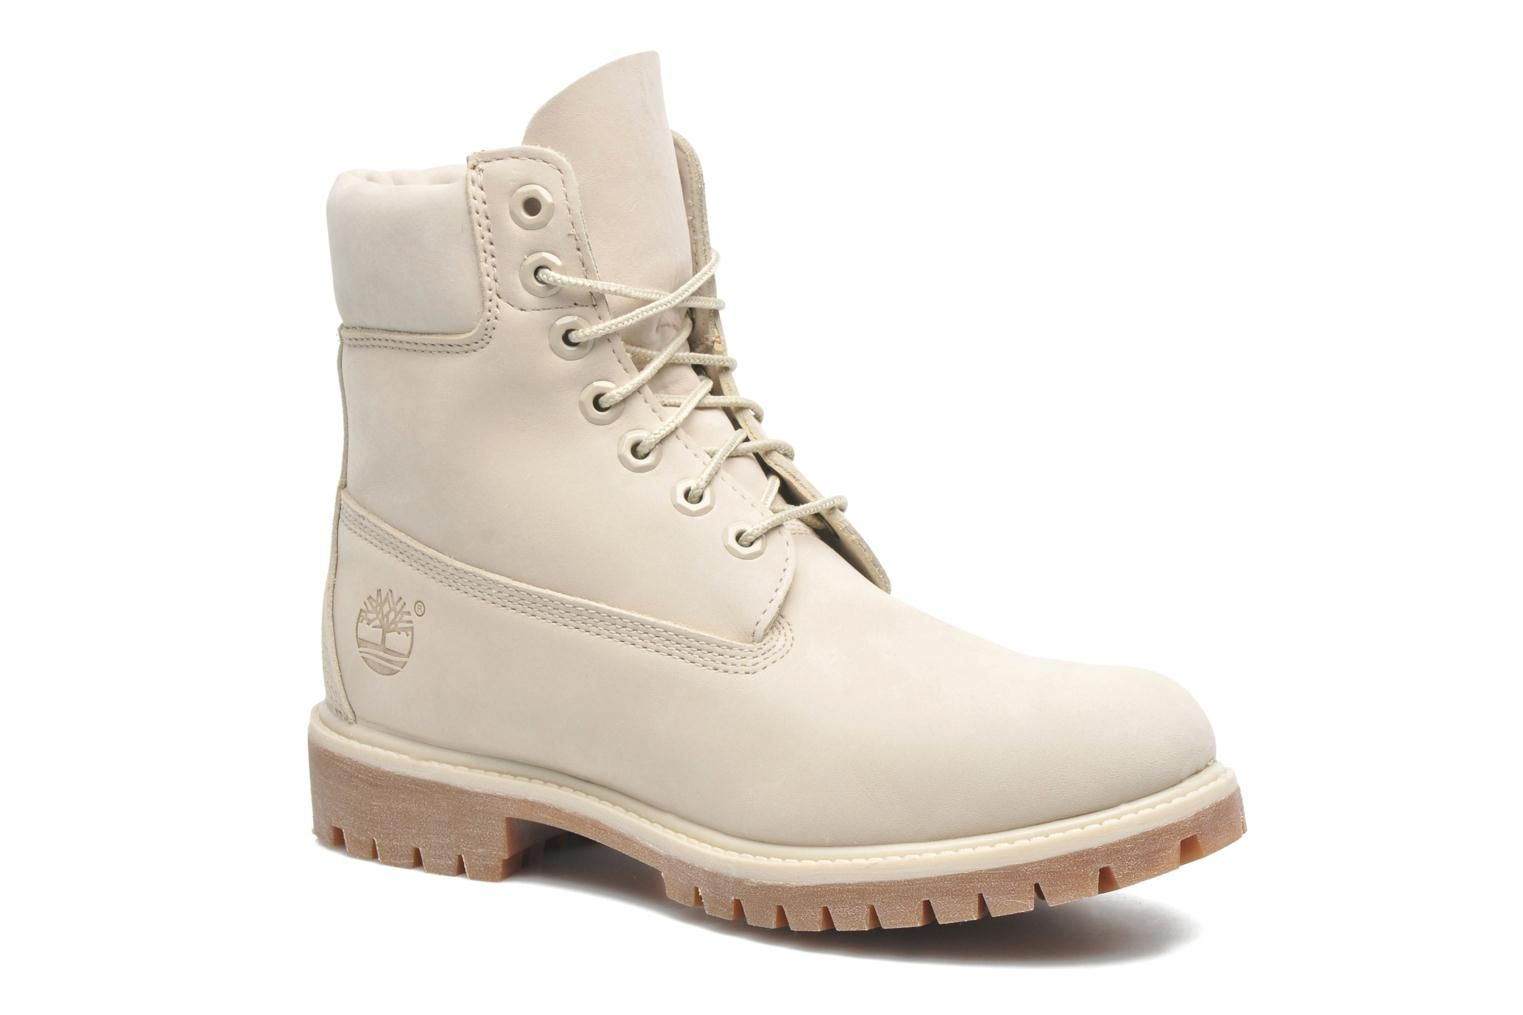 Timberland 6 inch premium boot | Timberland stiefel outfit